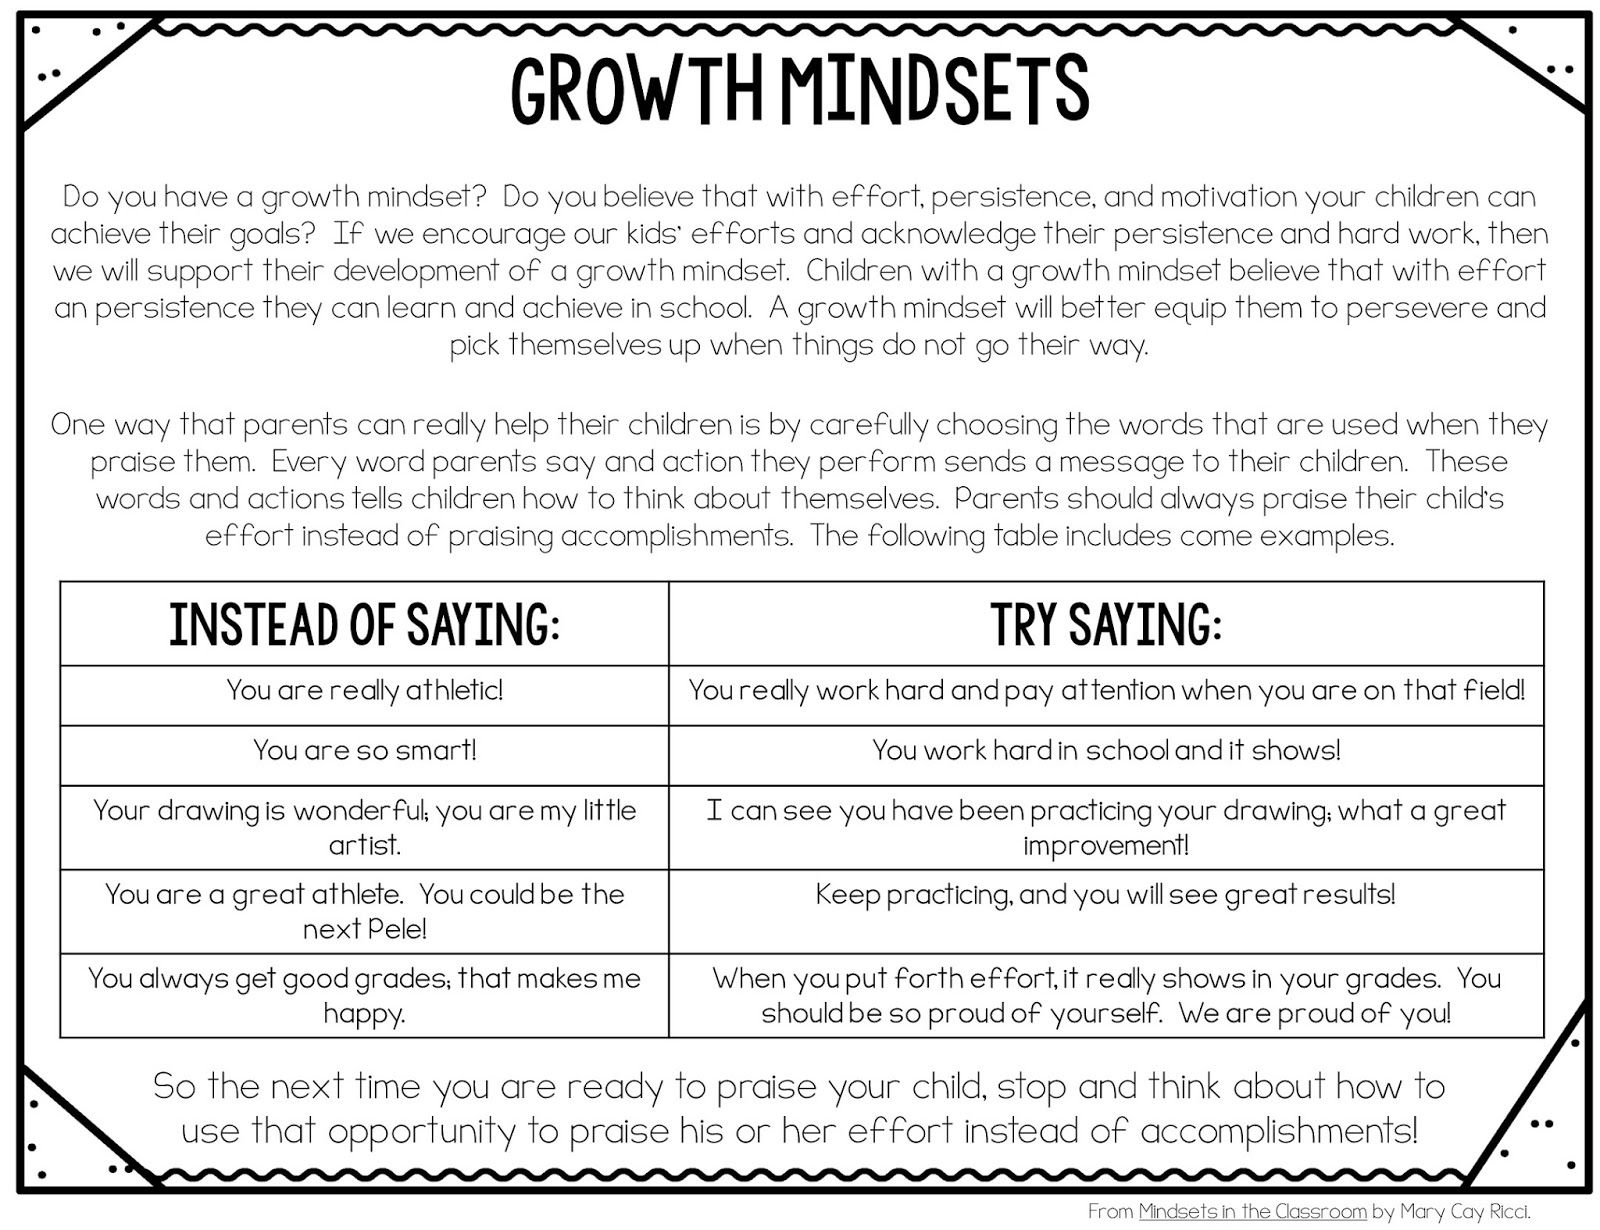 239 best images about Coaching Growth Mindset on Pinterest ...